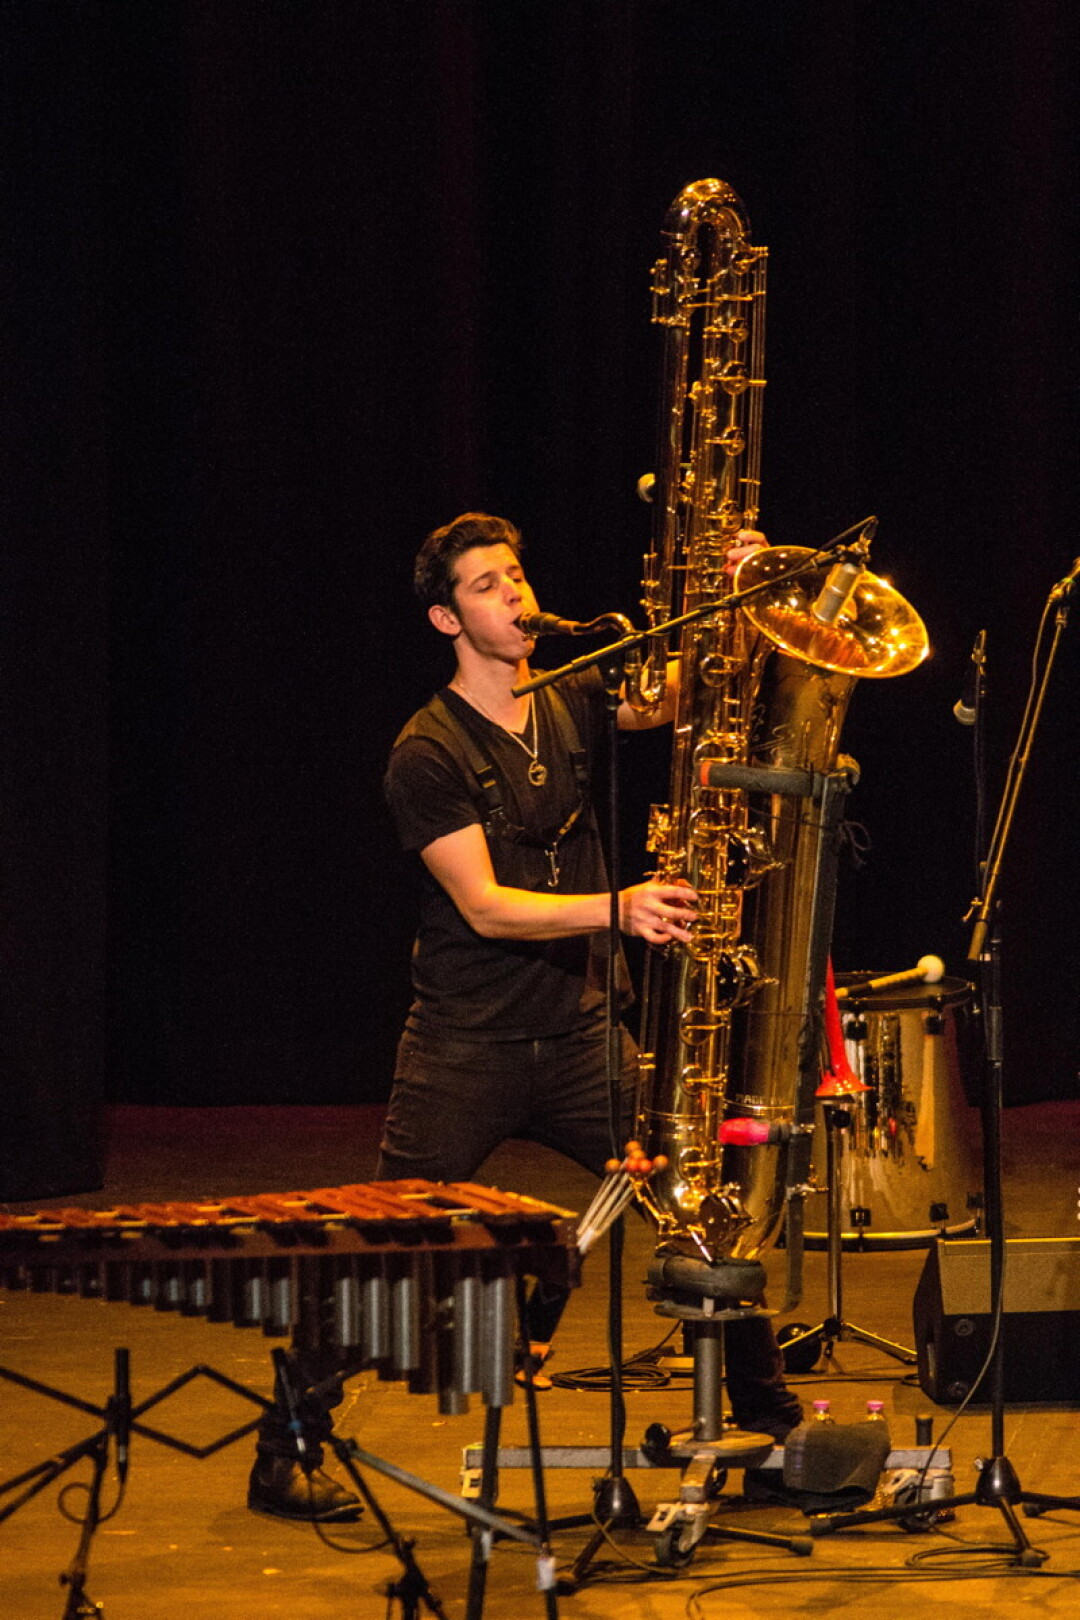 HEY, CAN WE GET A BIGGER SAXOPHONE OVER HERE? Sax gods with amazing horns were just part of the show when the Violent Femmes came to the State Theatre on Wednesday, October 25.